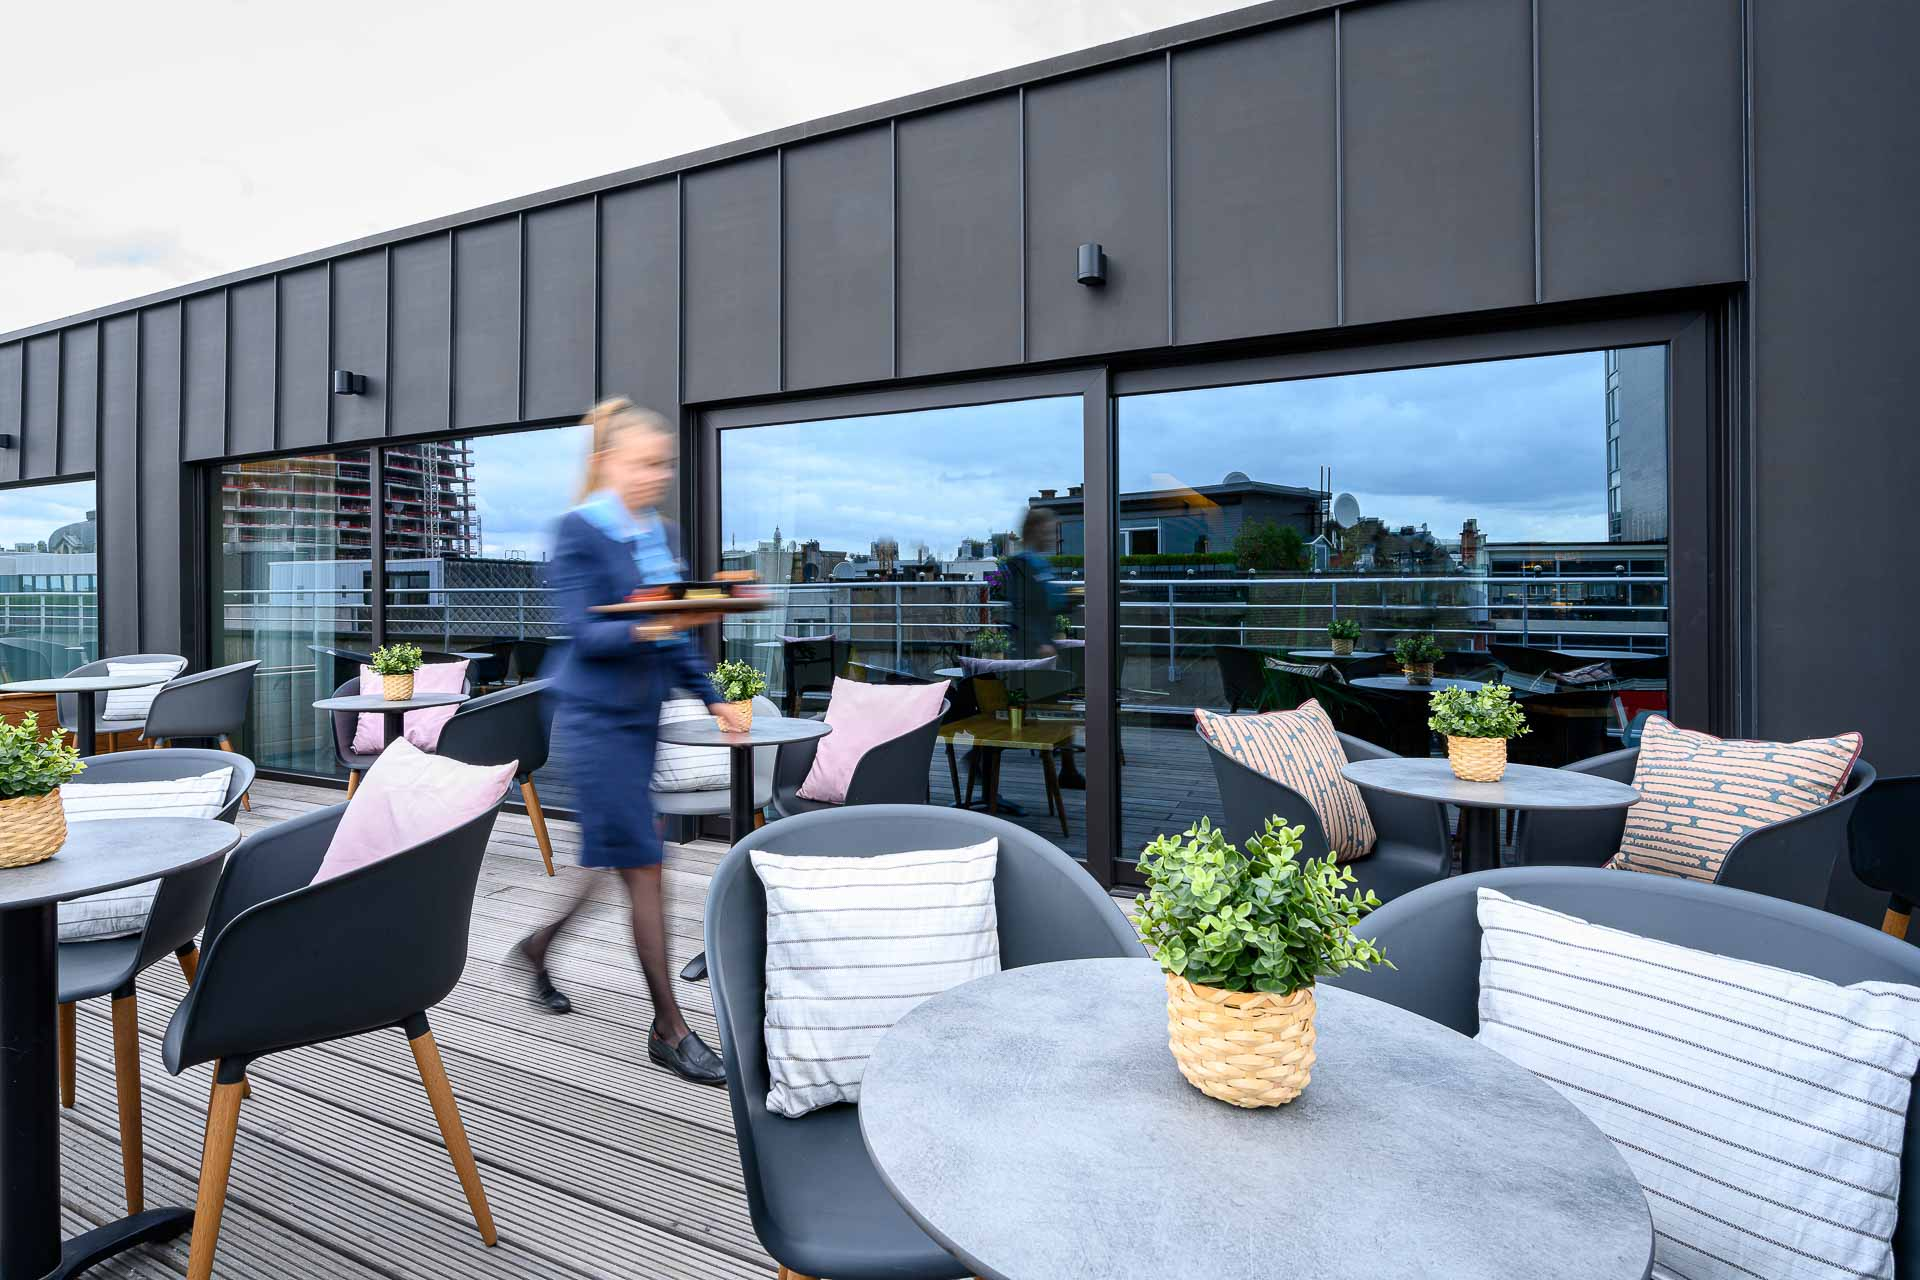 Rooftop Terrace in Antwerp